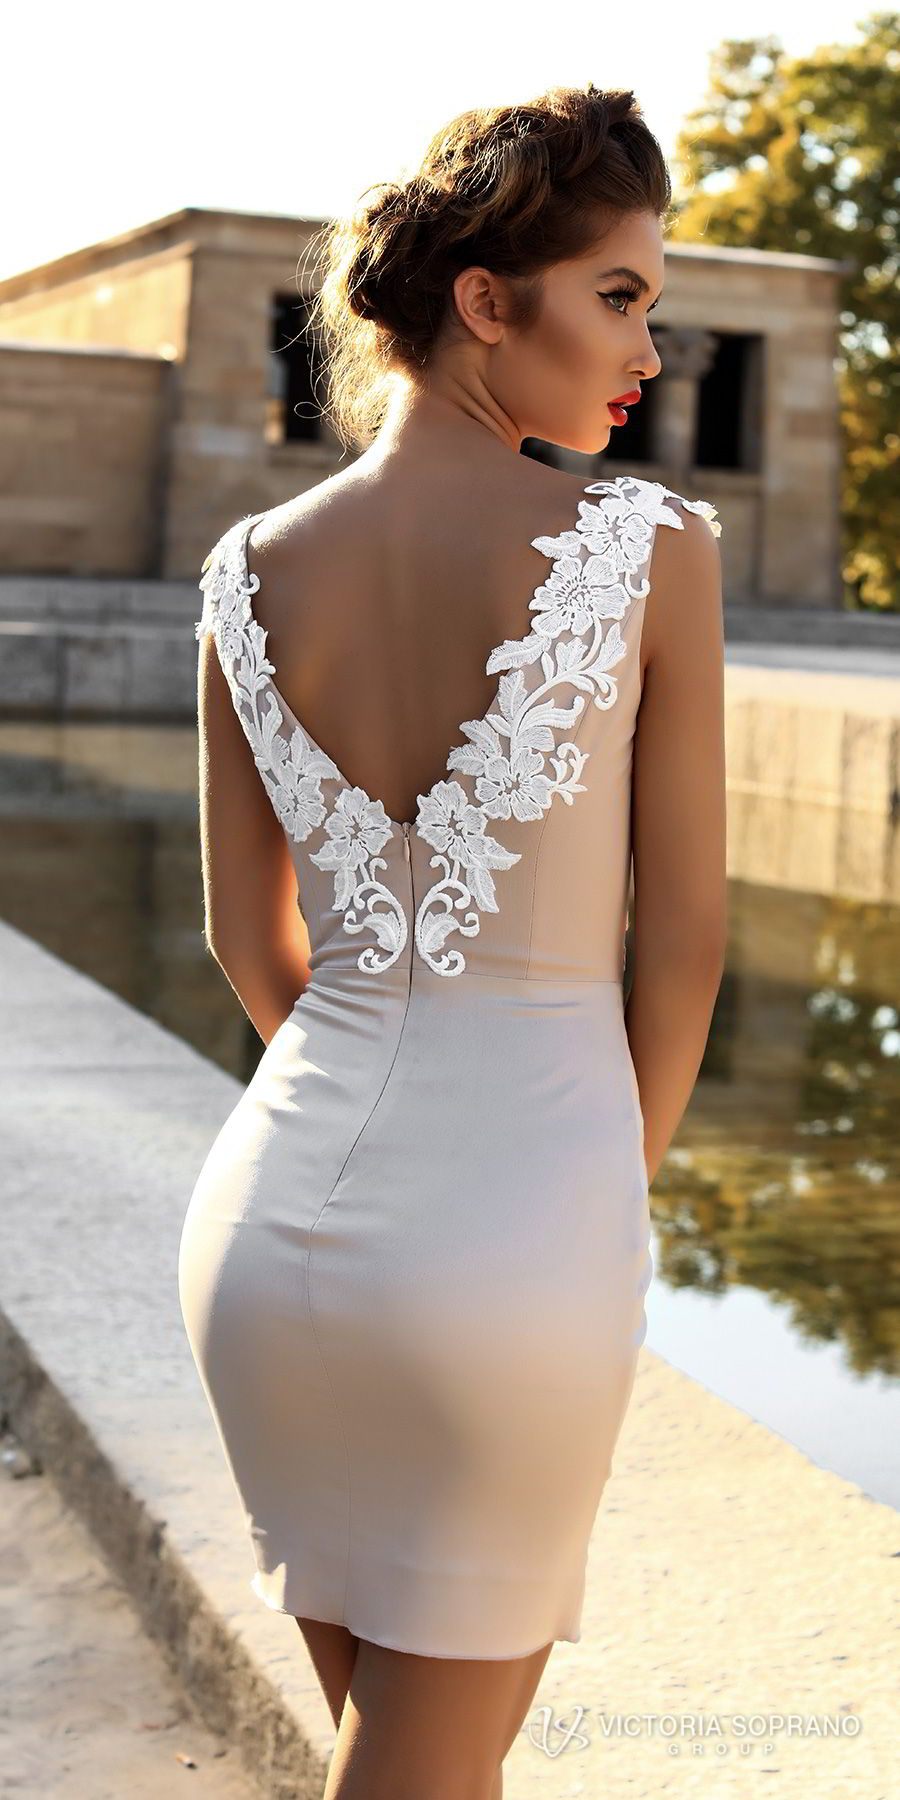 victoria soprano 2018 bridal cap sleeves deep v neck heavily embellished bodice sexy modern mini skirt short wedding dress open v back (leila) zbv